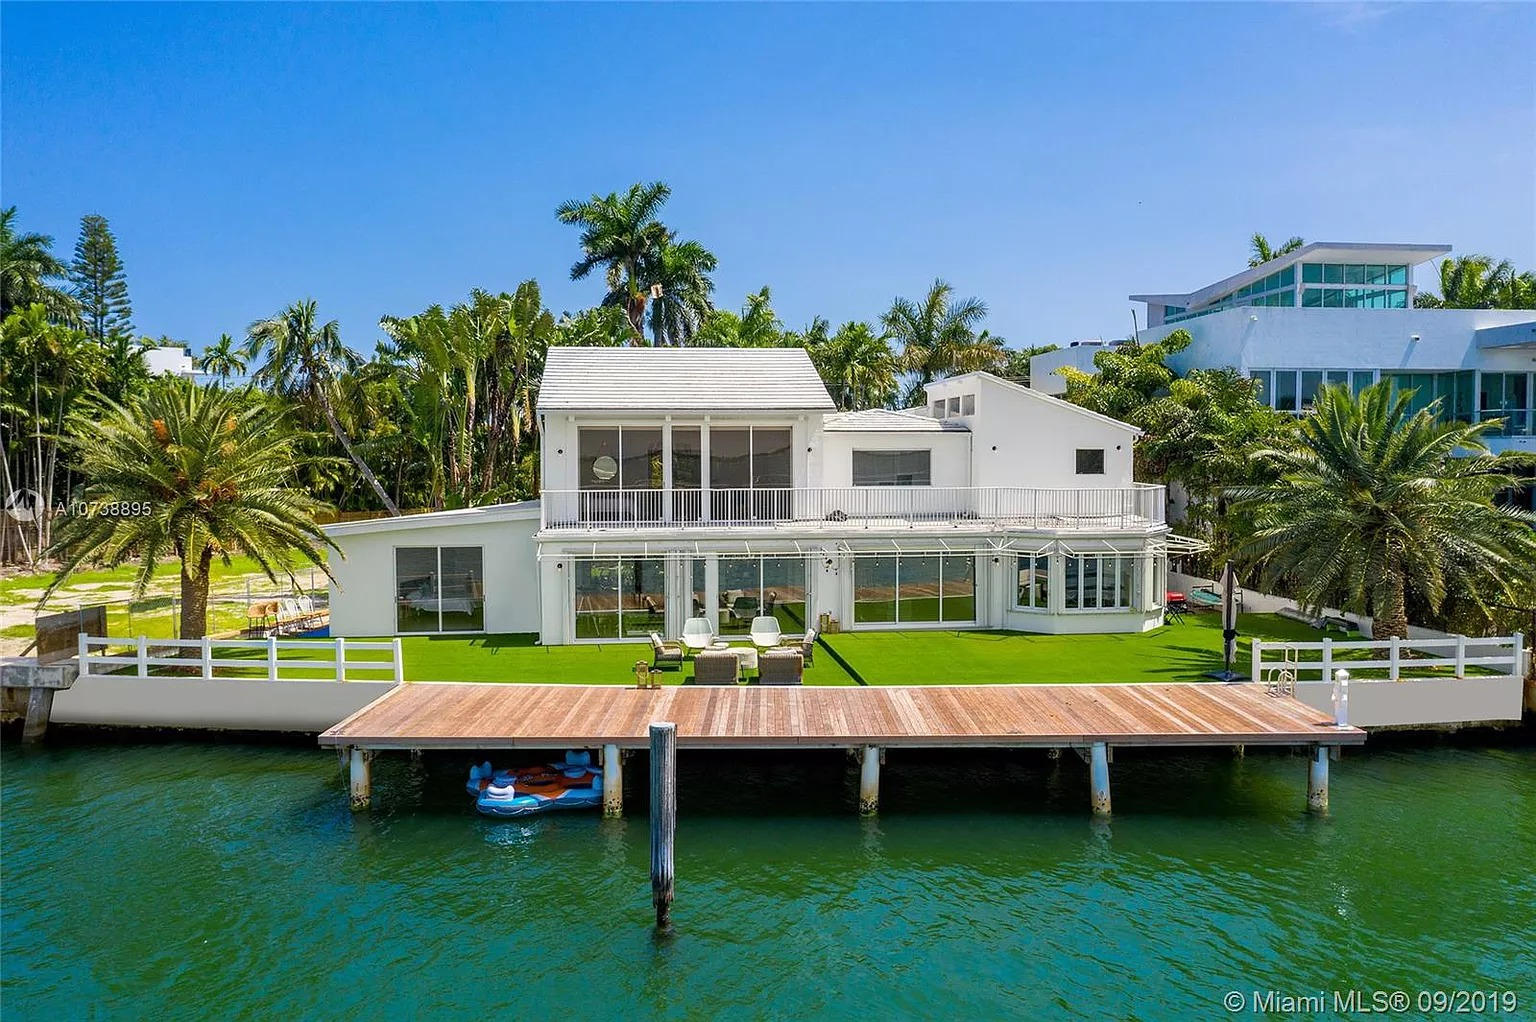 1413 N Venetian Way, Miami Beach, FL 33139 - $6,790,000 home for sale, house images, photos and pics gallery